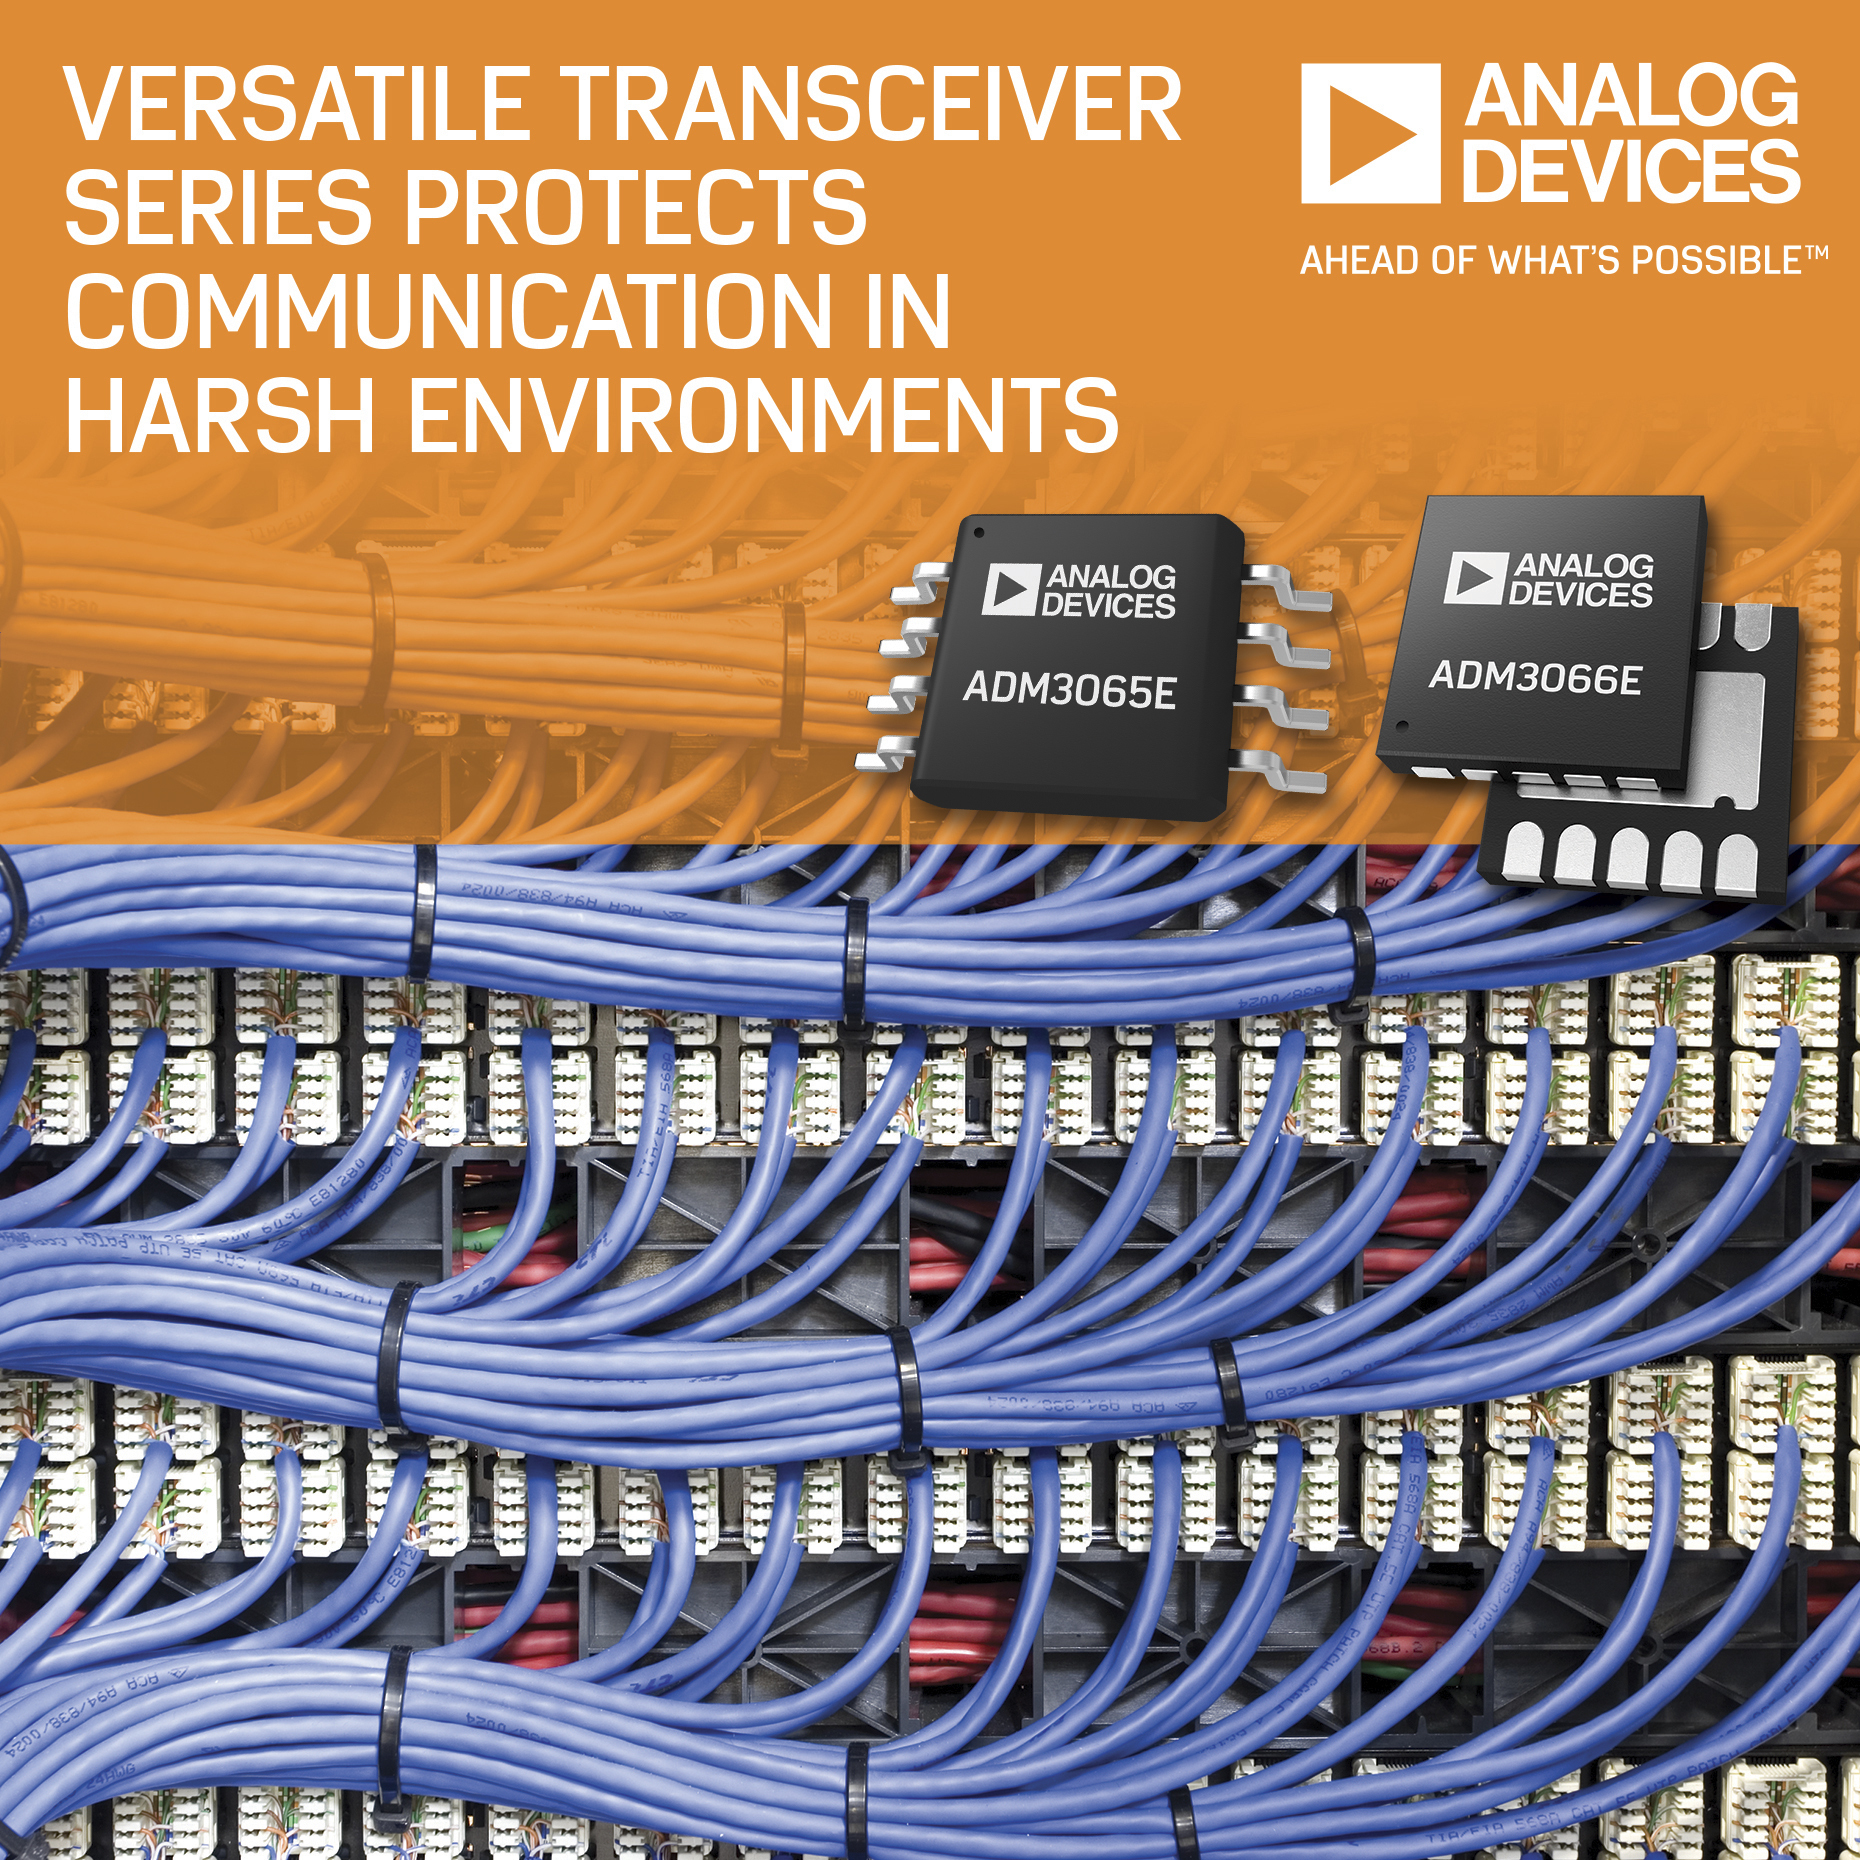 analog devices\u0027 versatile 50 mbps rs 485 transceiver series protects